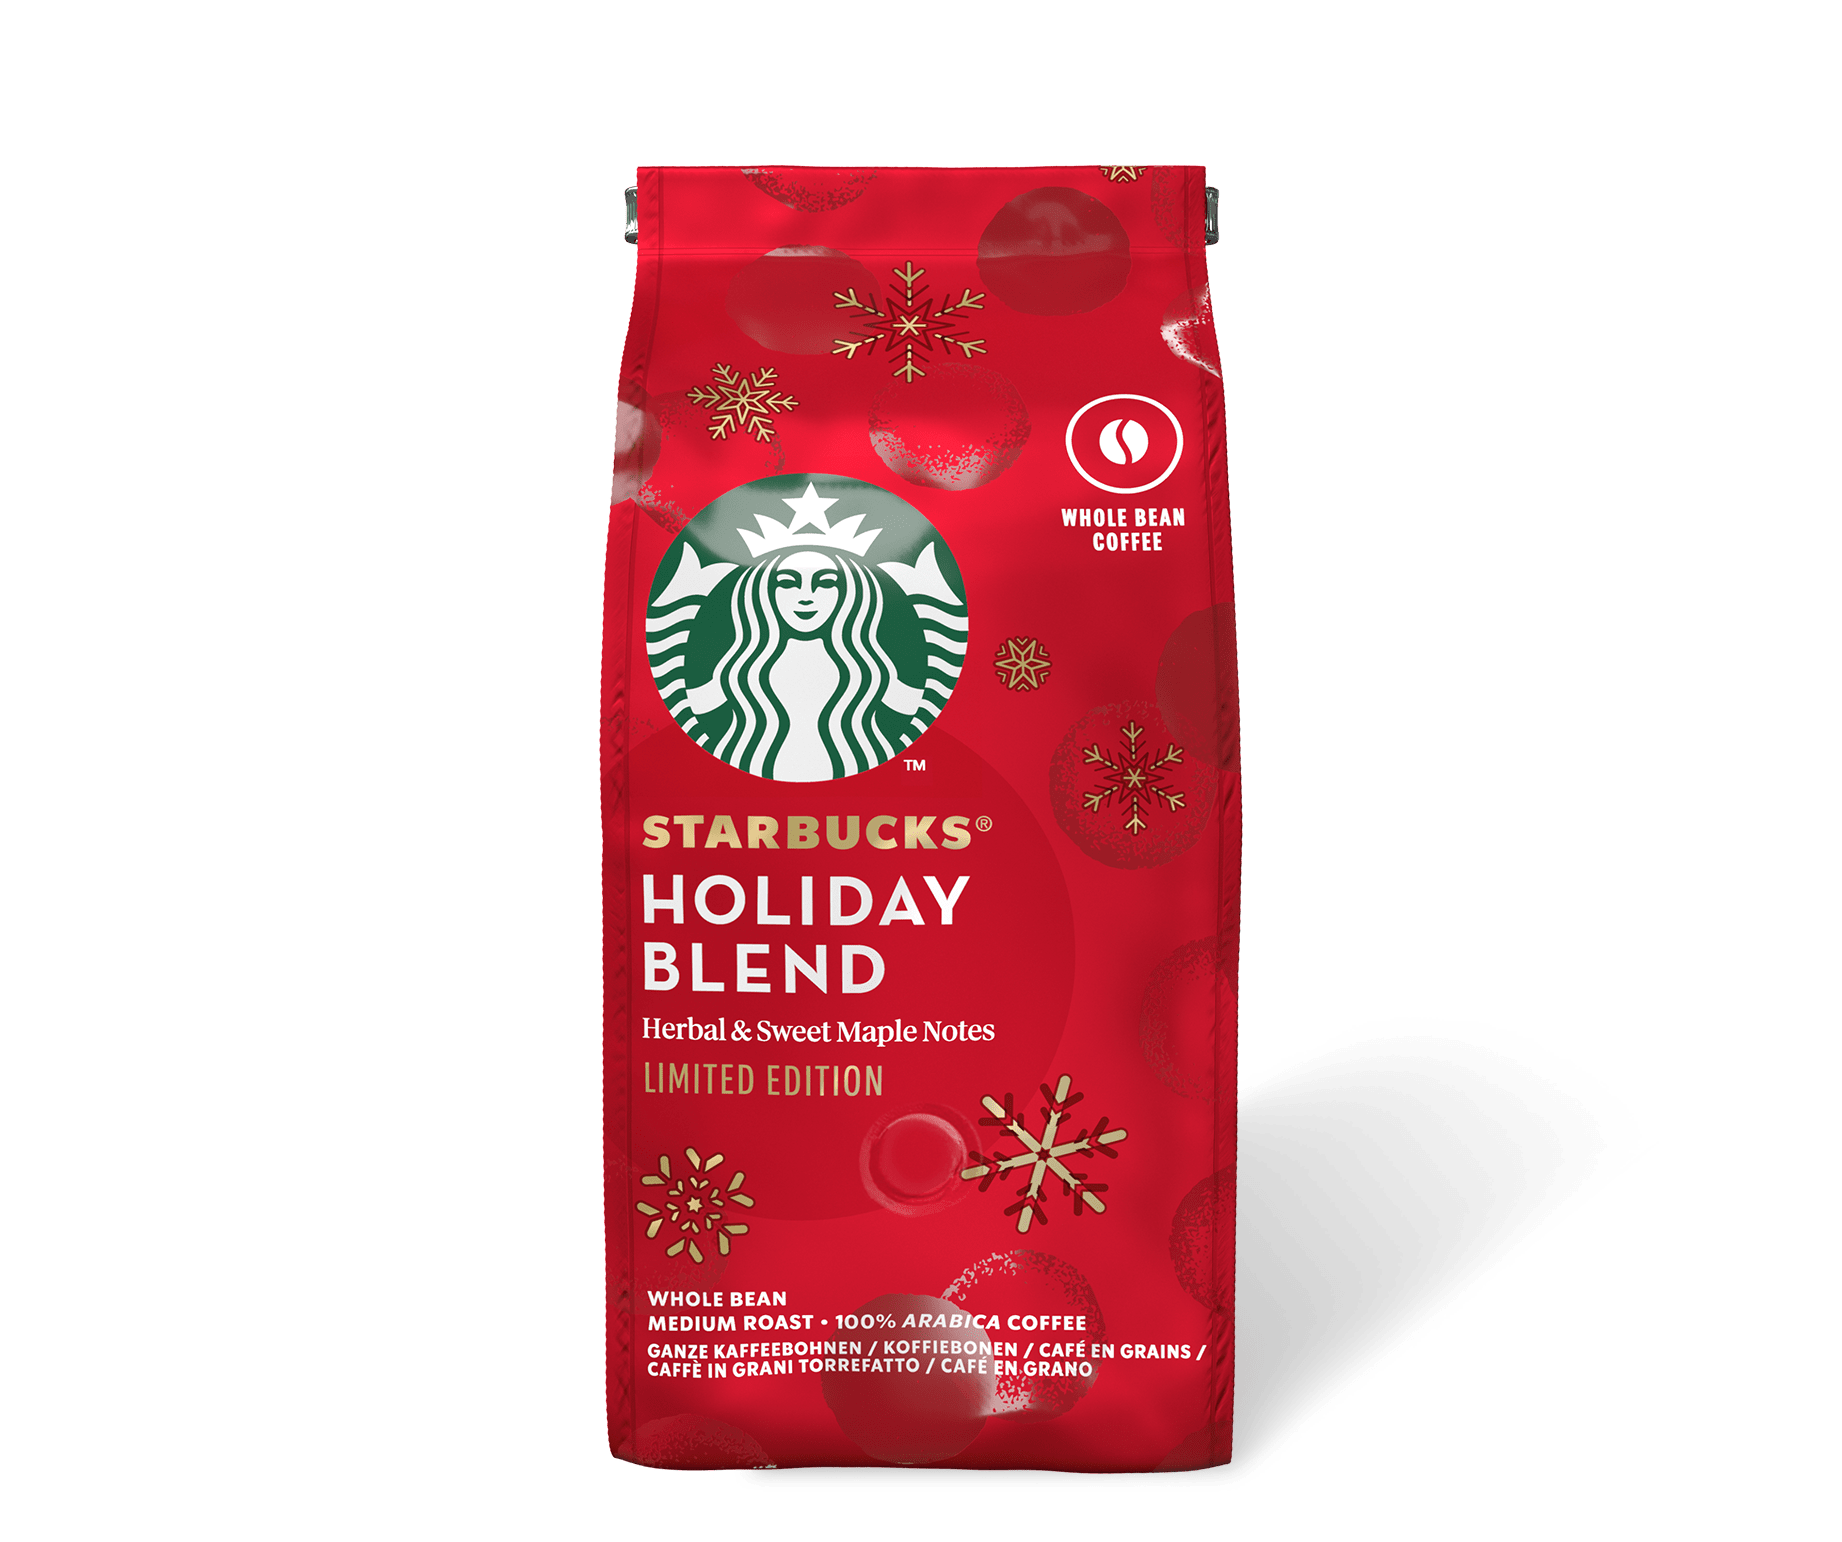 SBUX Whole Bean Holiday Blend